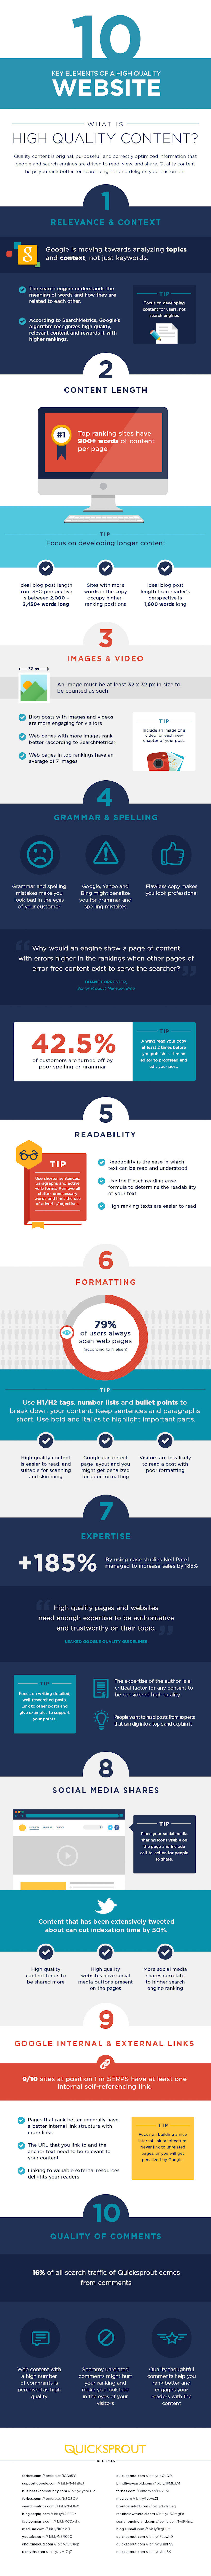 10 Tips For Creating A High Quality Website - #infographic